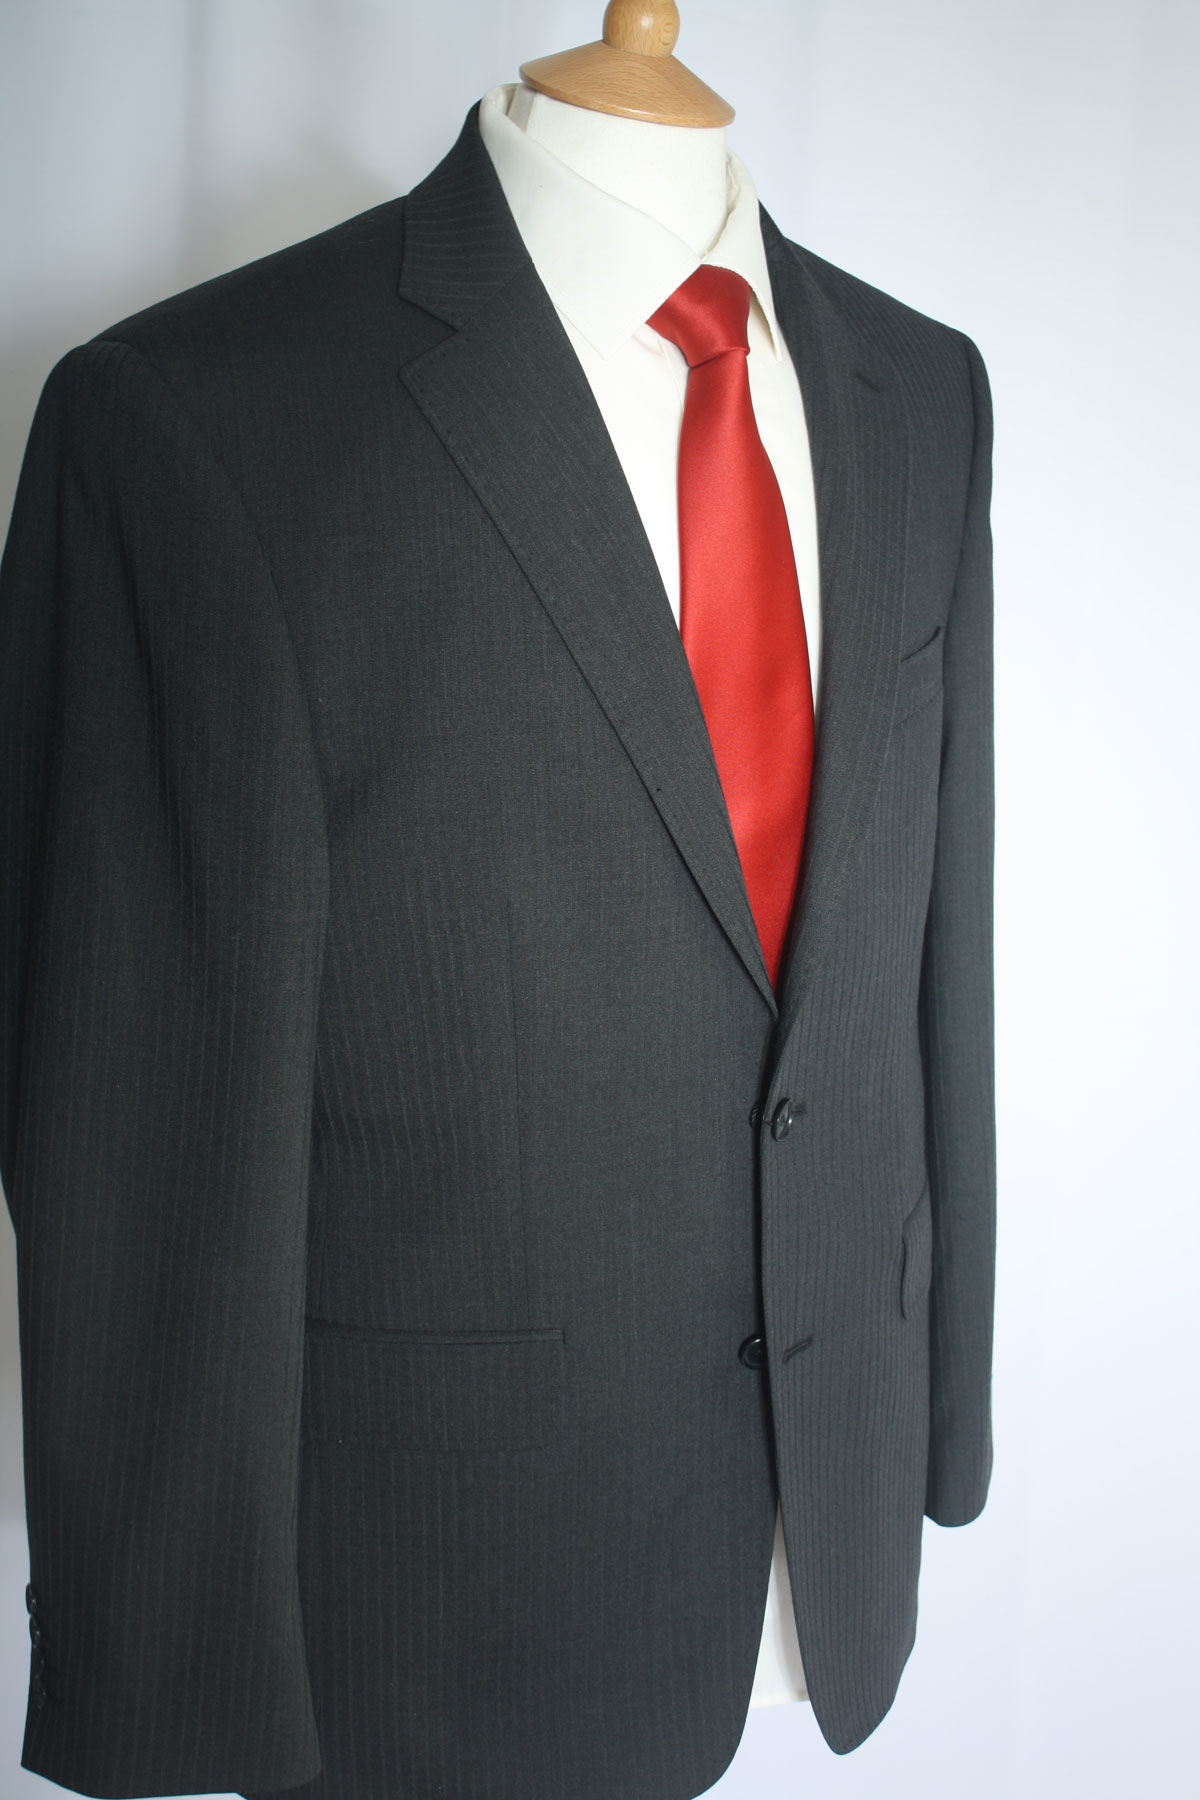 Or look for sleeveless shirts in your favorite color—perfect for wearing under a suit jacket. When you have a great suit in your wardrobe, you know that you are ready for anything. Browse the selection of suits and suit separates that can be worn in several types of places, from school to work.